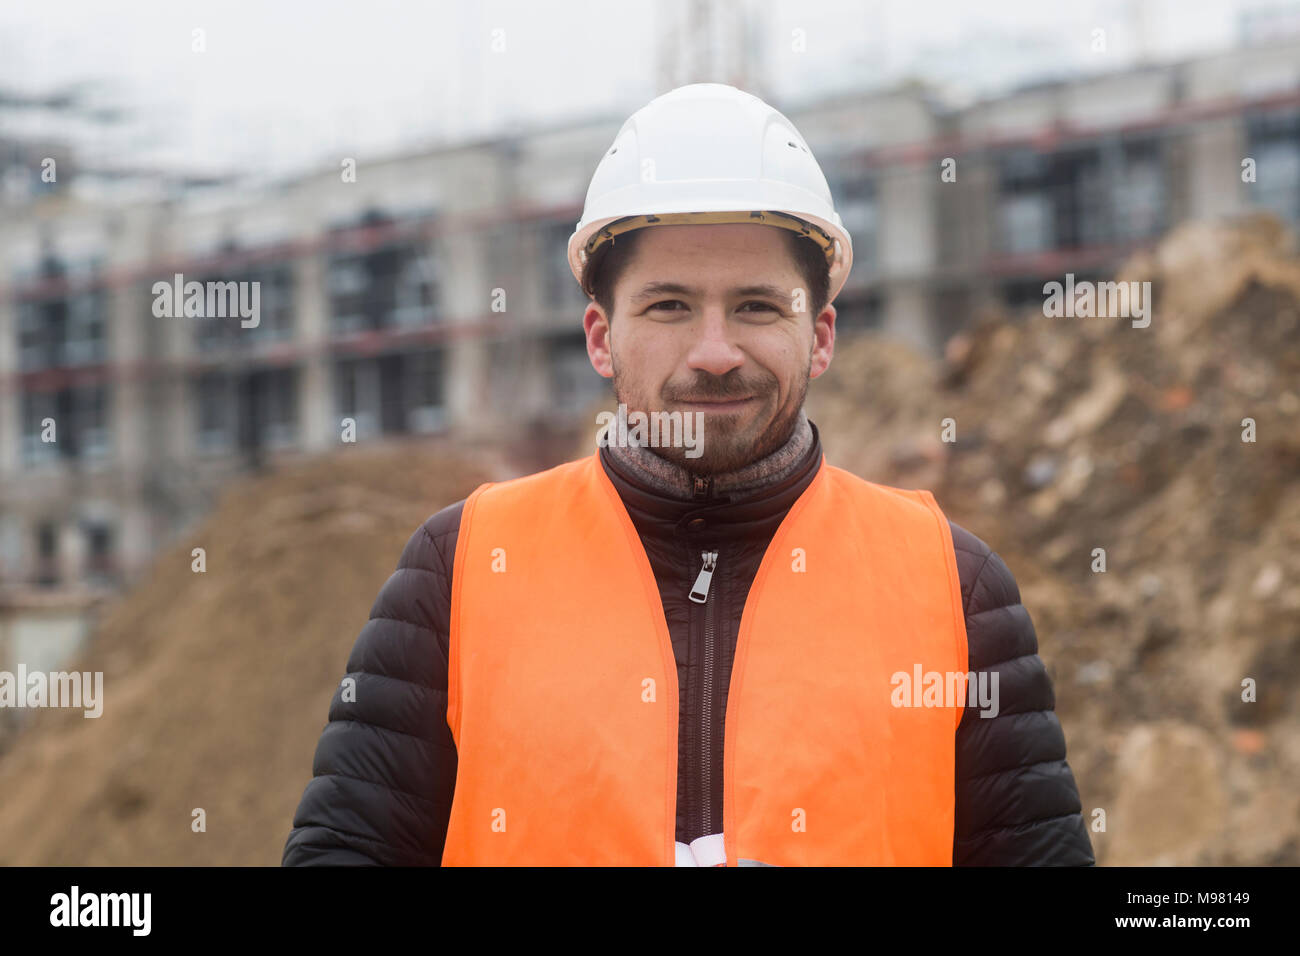 Portrait of content man wearing safety vest and helmet at construction site - Stock Image